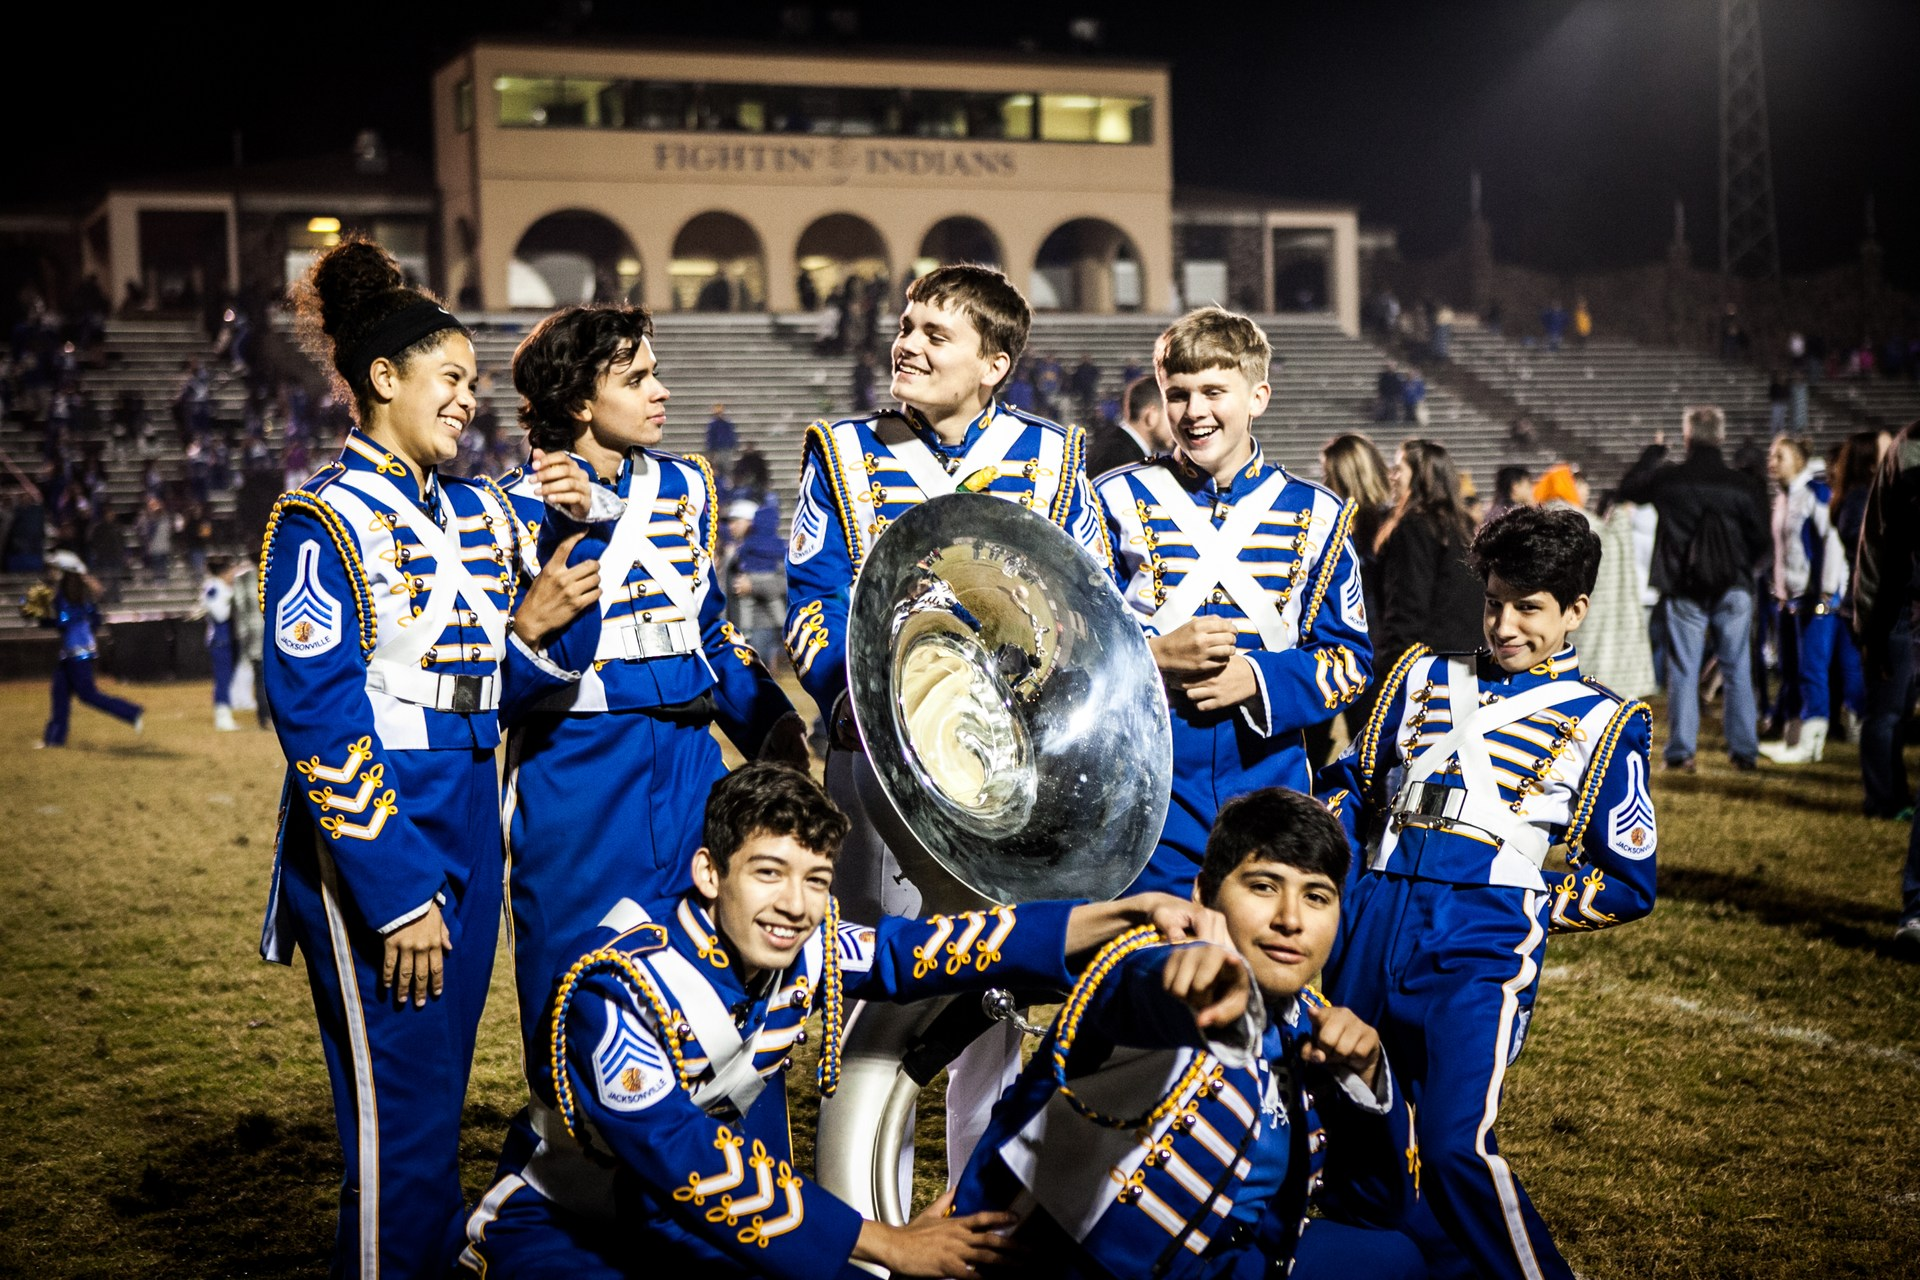 Tuba section on the field